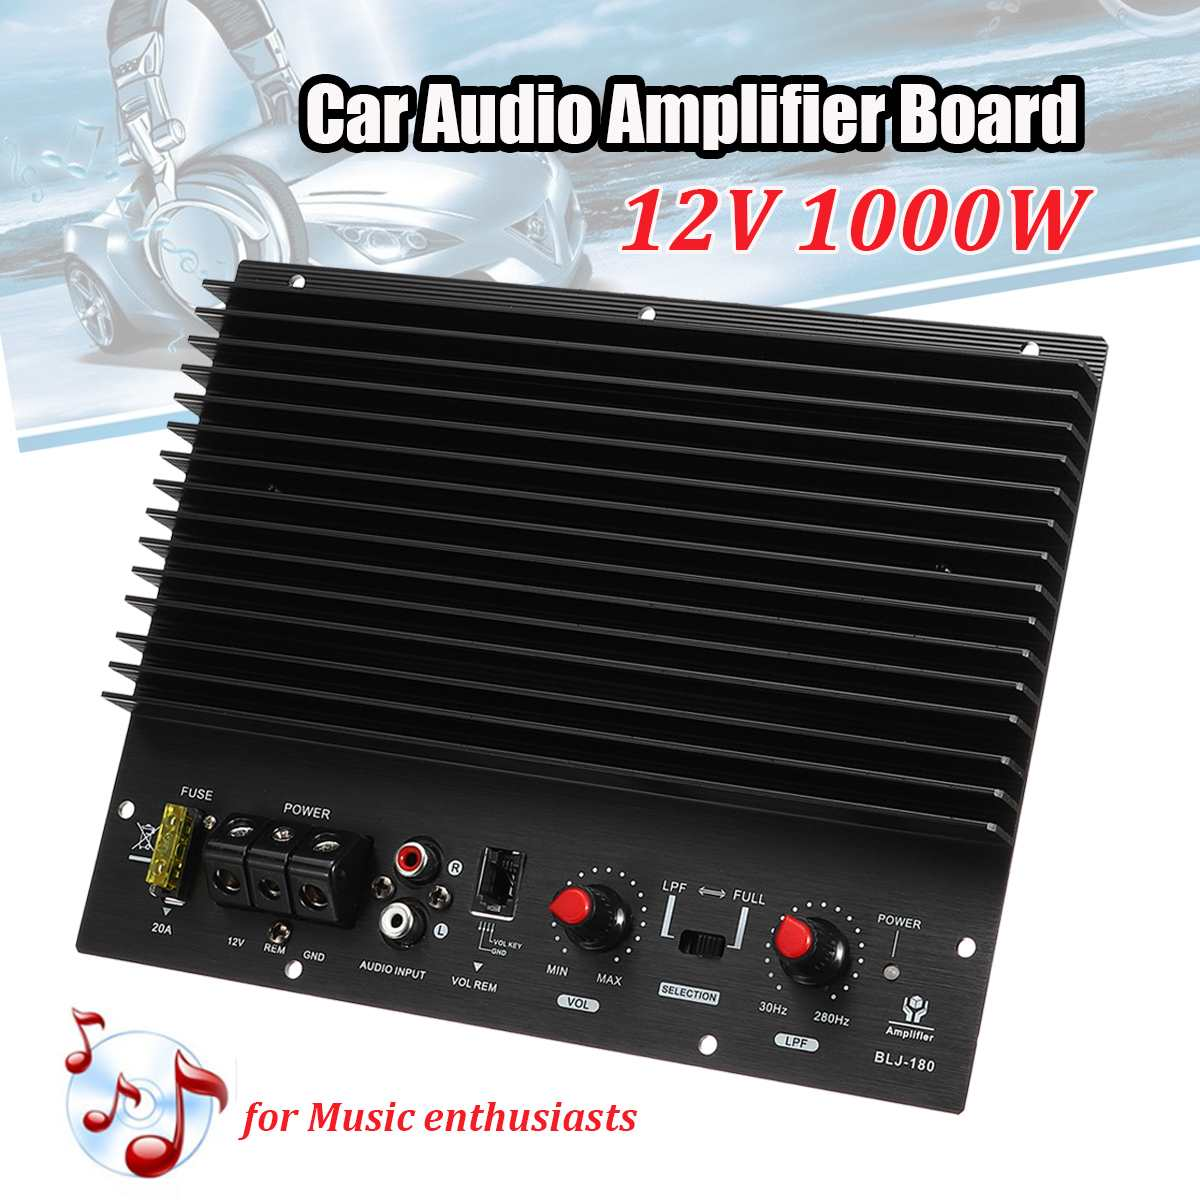 Amp-Board Subwoofer Car-Player Powerful-Bass Auto 1000W DIY 12V